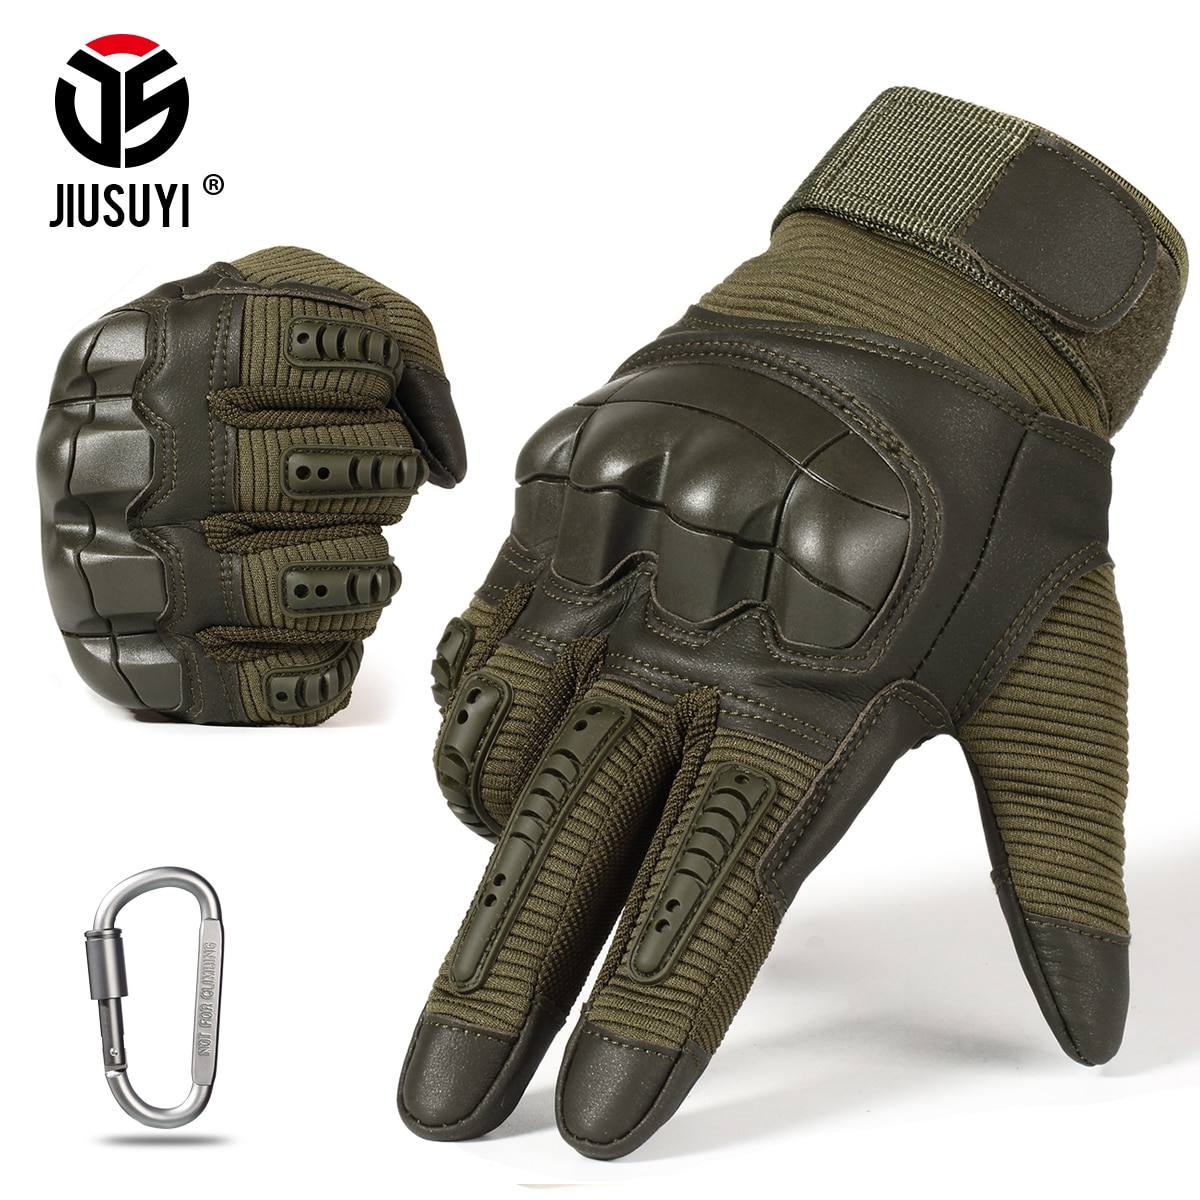 Full Finger Tactical Army Gloves Military Paintball Shooting Airsoft PU Leather Touch Screen Rubber Protective Gear Women Men